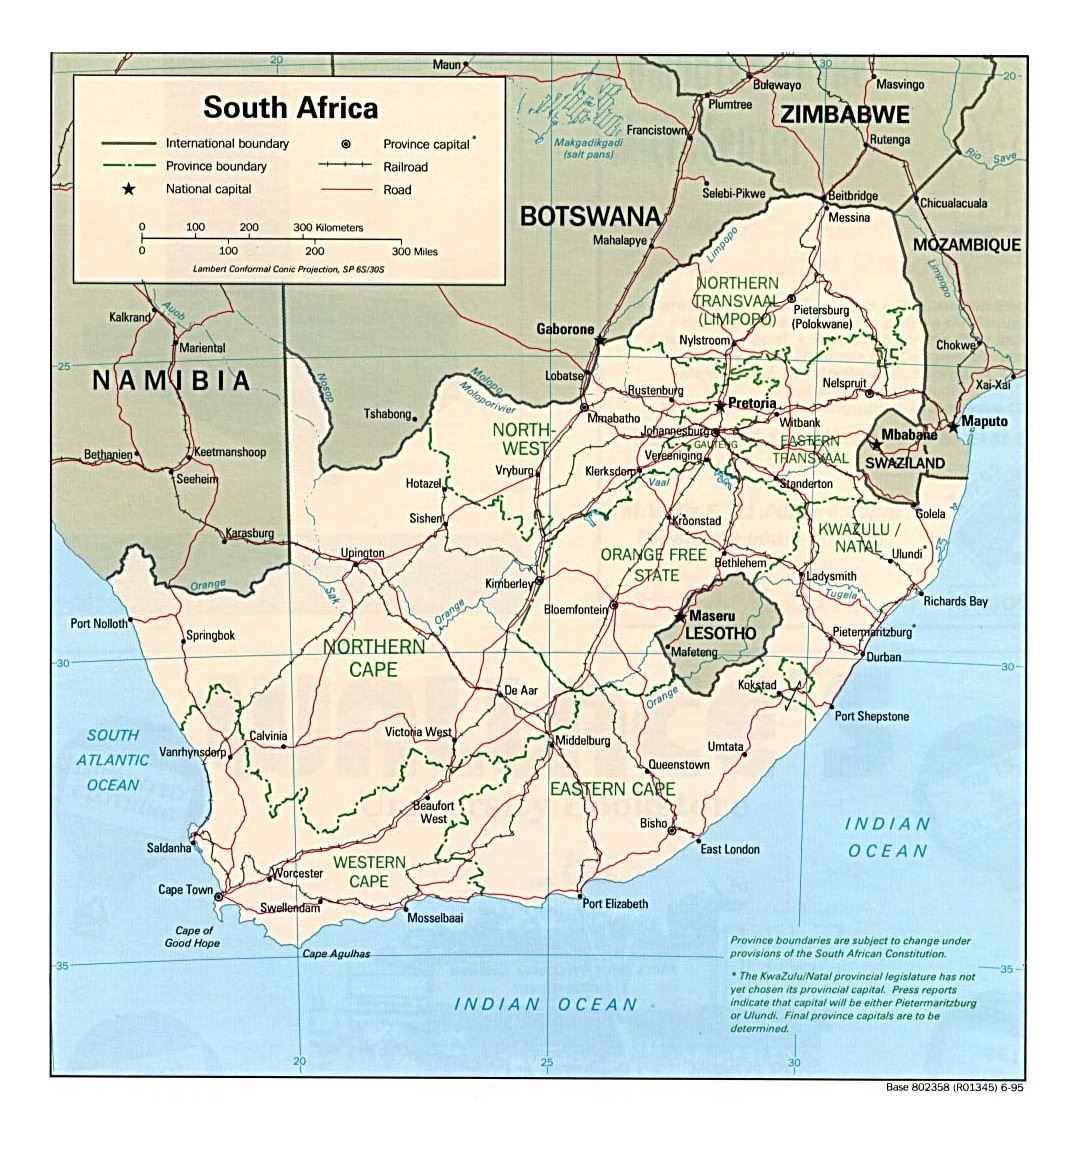 Detailed political and administrative map of South Africa with roads, railroads and major cities - 1995